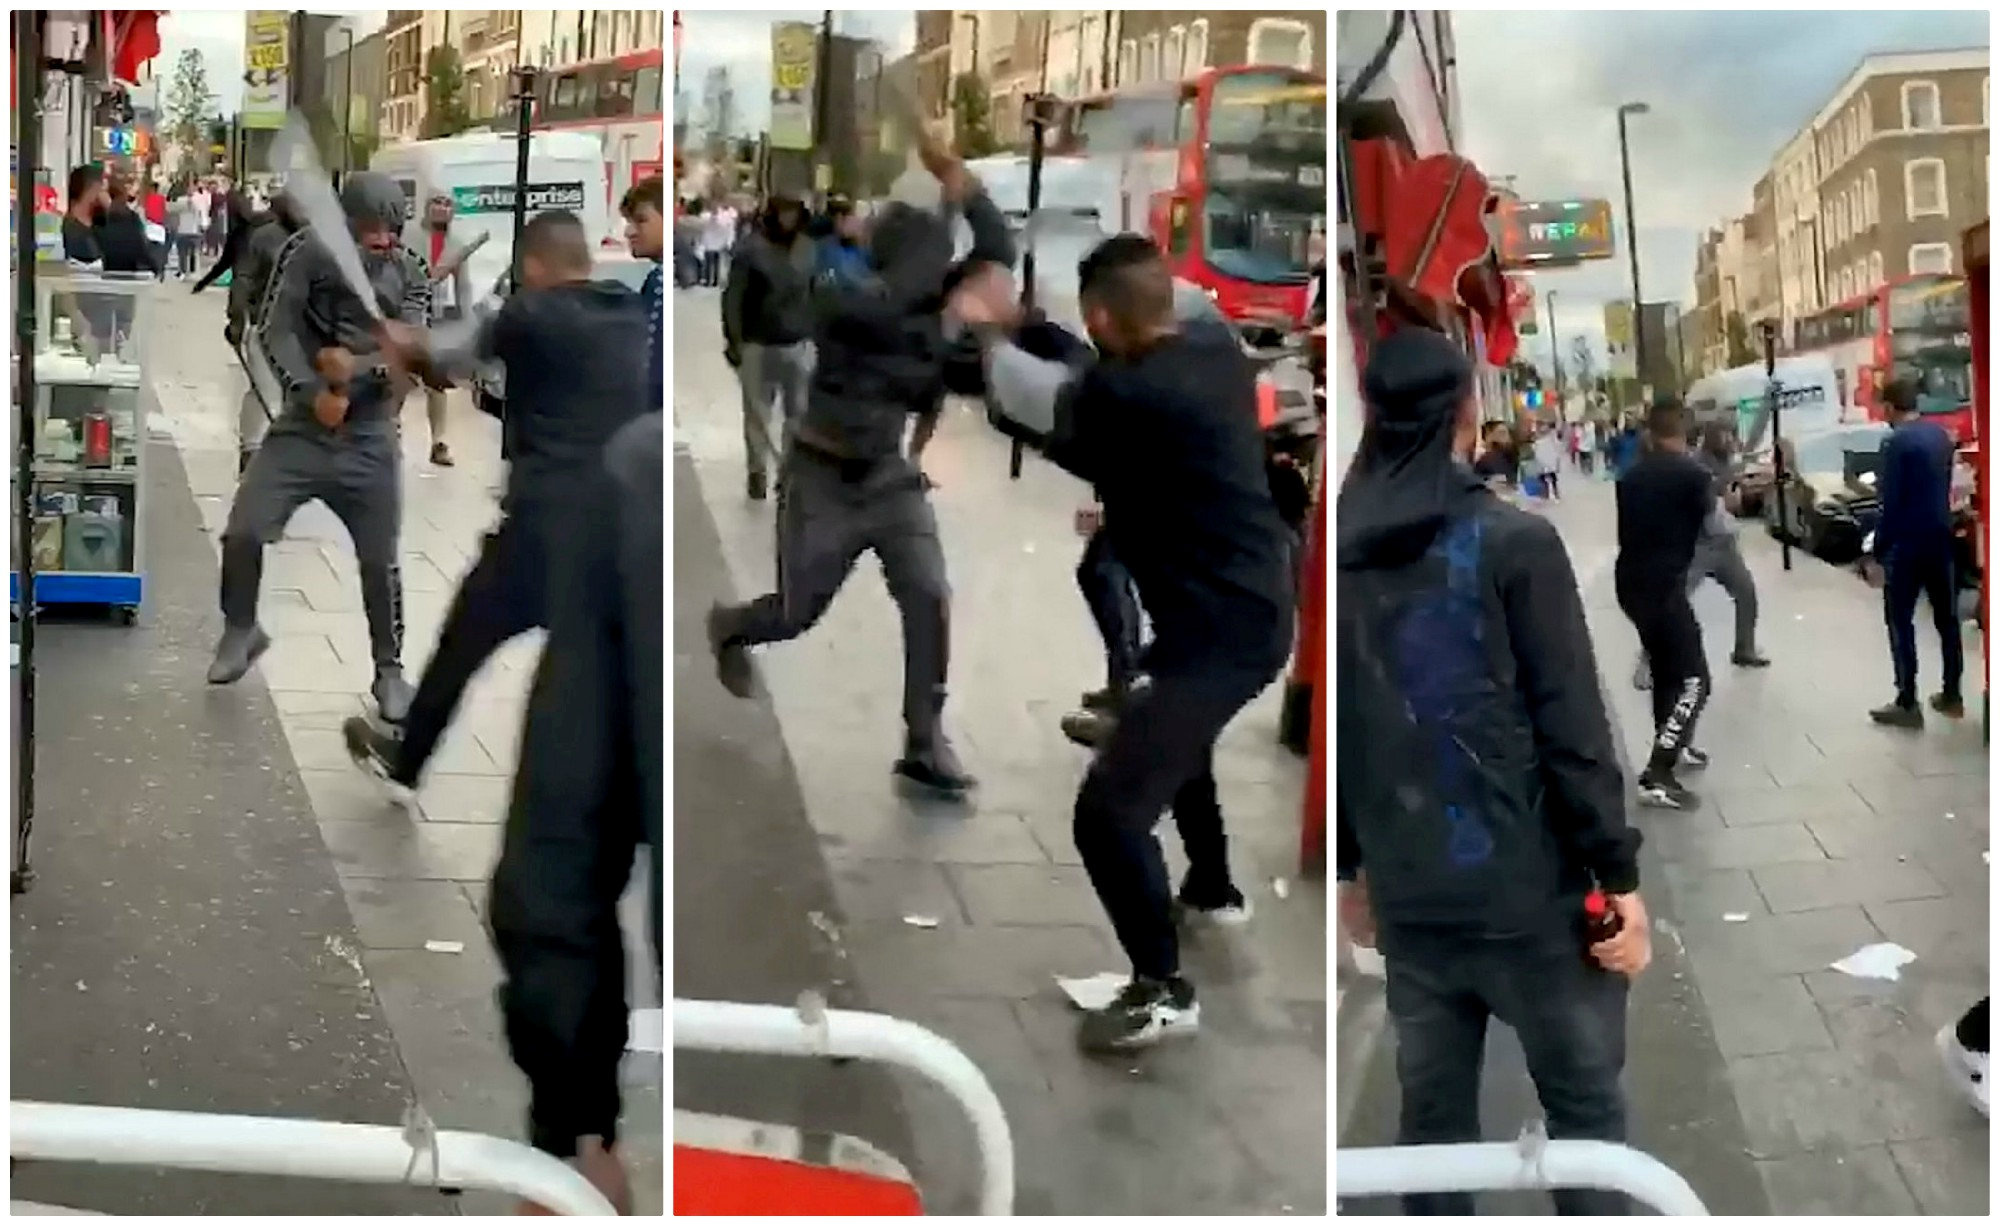 Shocking footage shows 'violent thugs' fight with metal baseball bats in Croydon